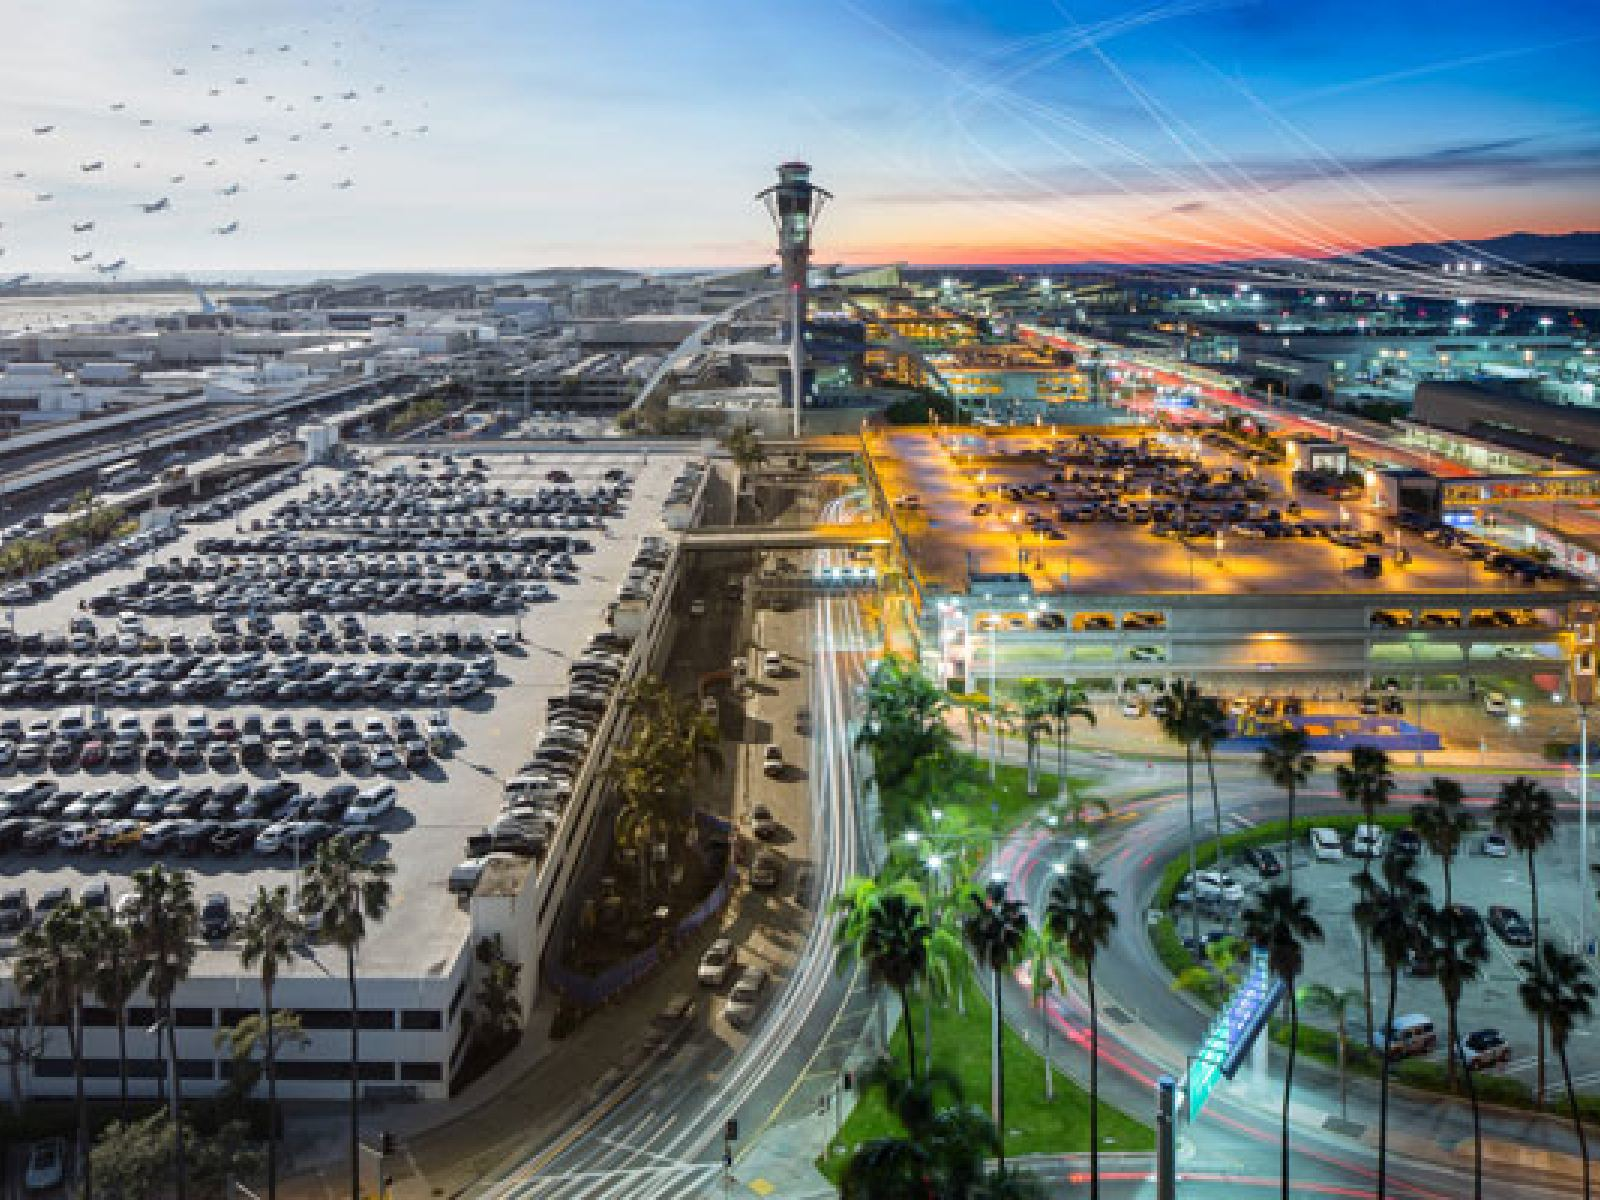 Main image for article titled Entdecken Sie Los Angeles International Airport (LAX)